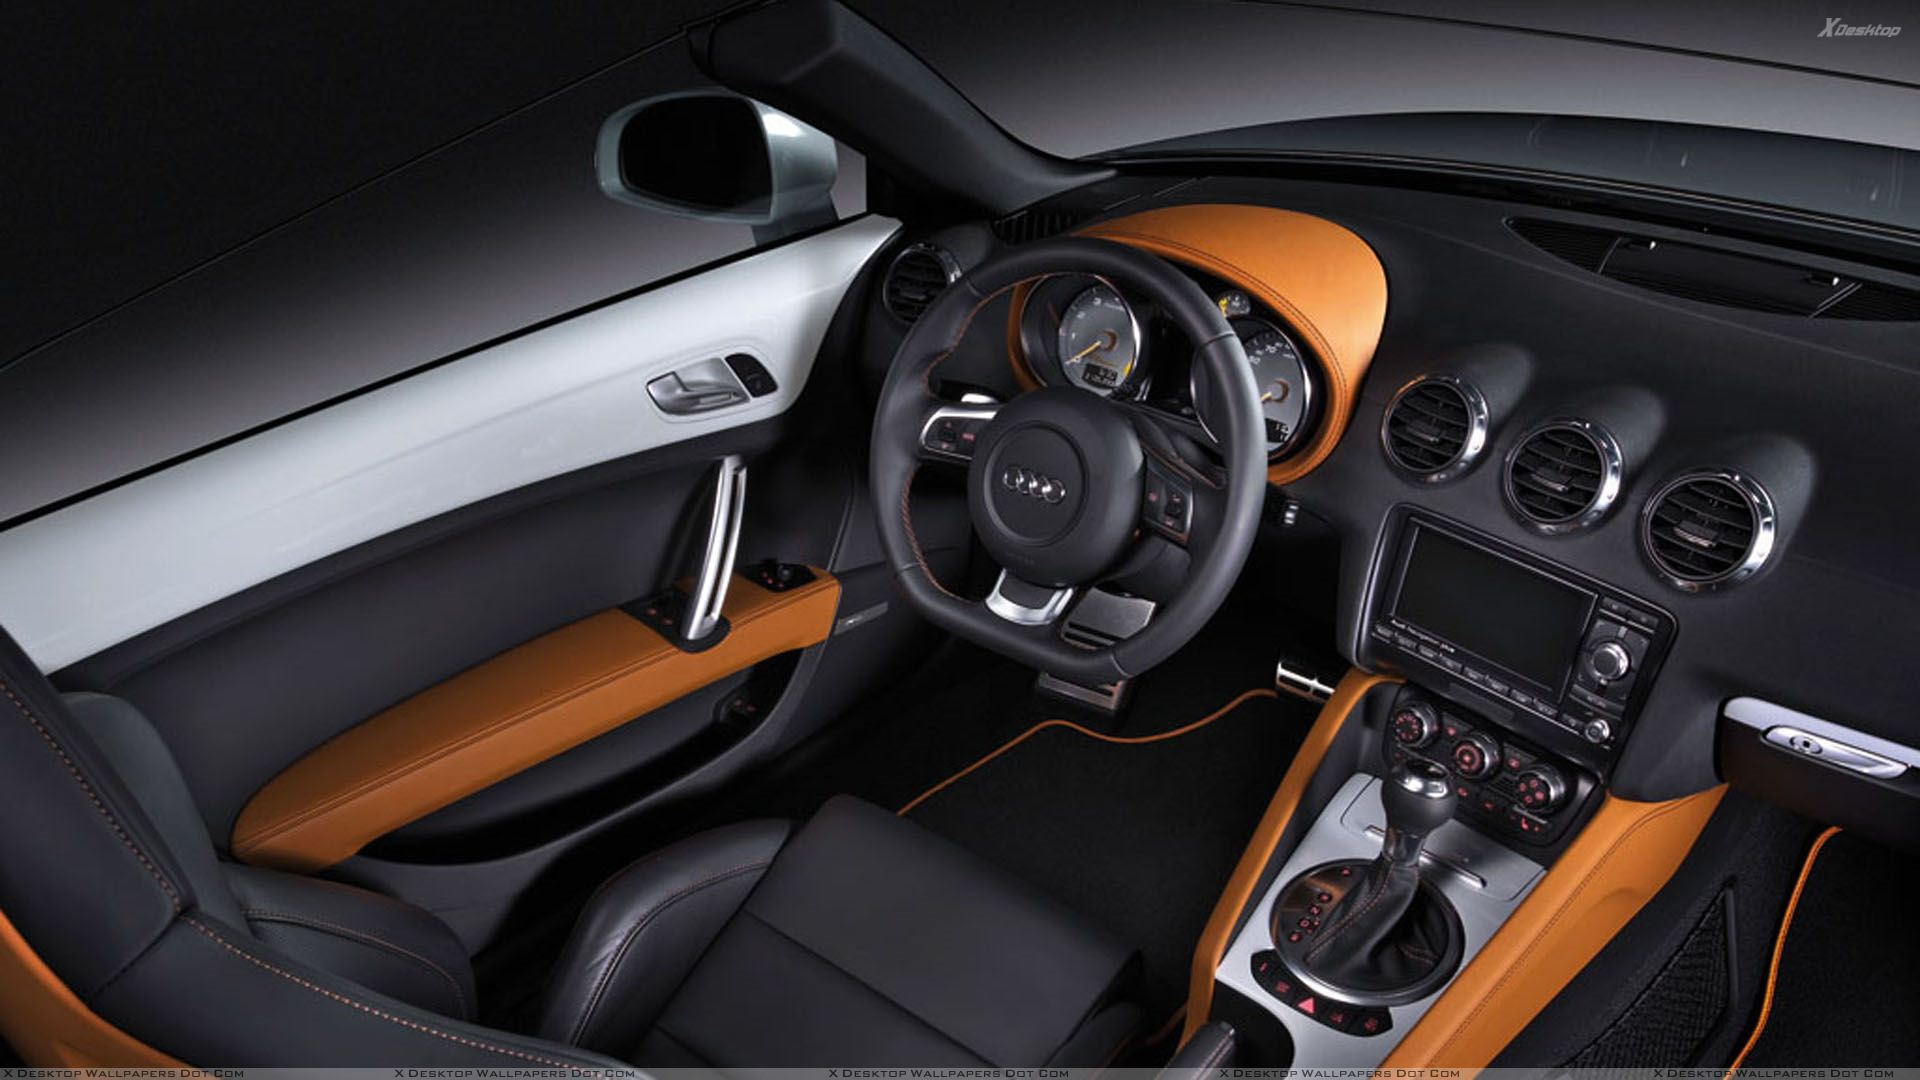 Audi tt clubsport quattro interior wallpaper for Audi tt interieur